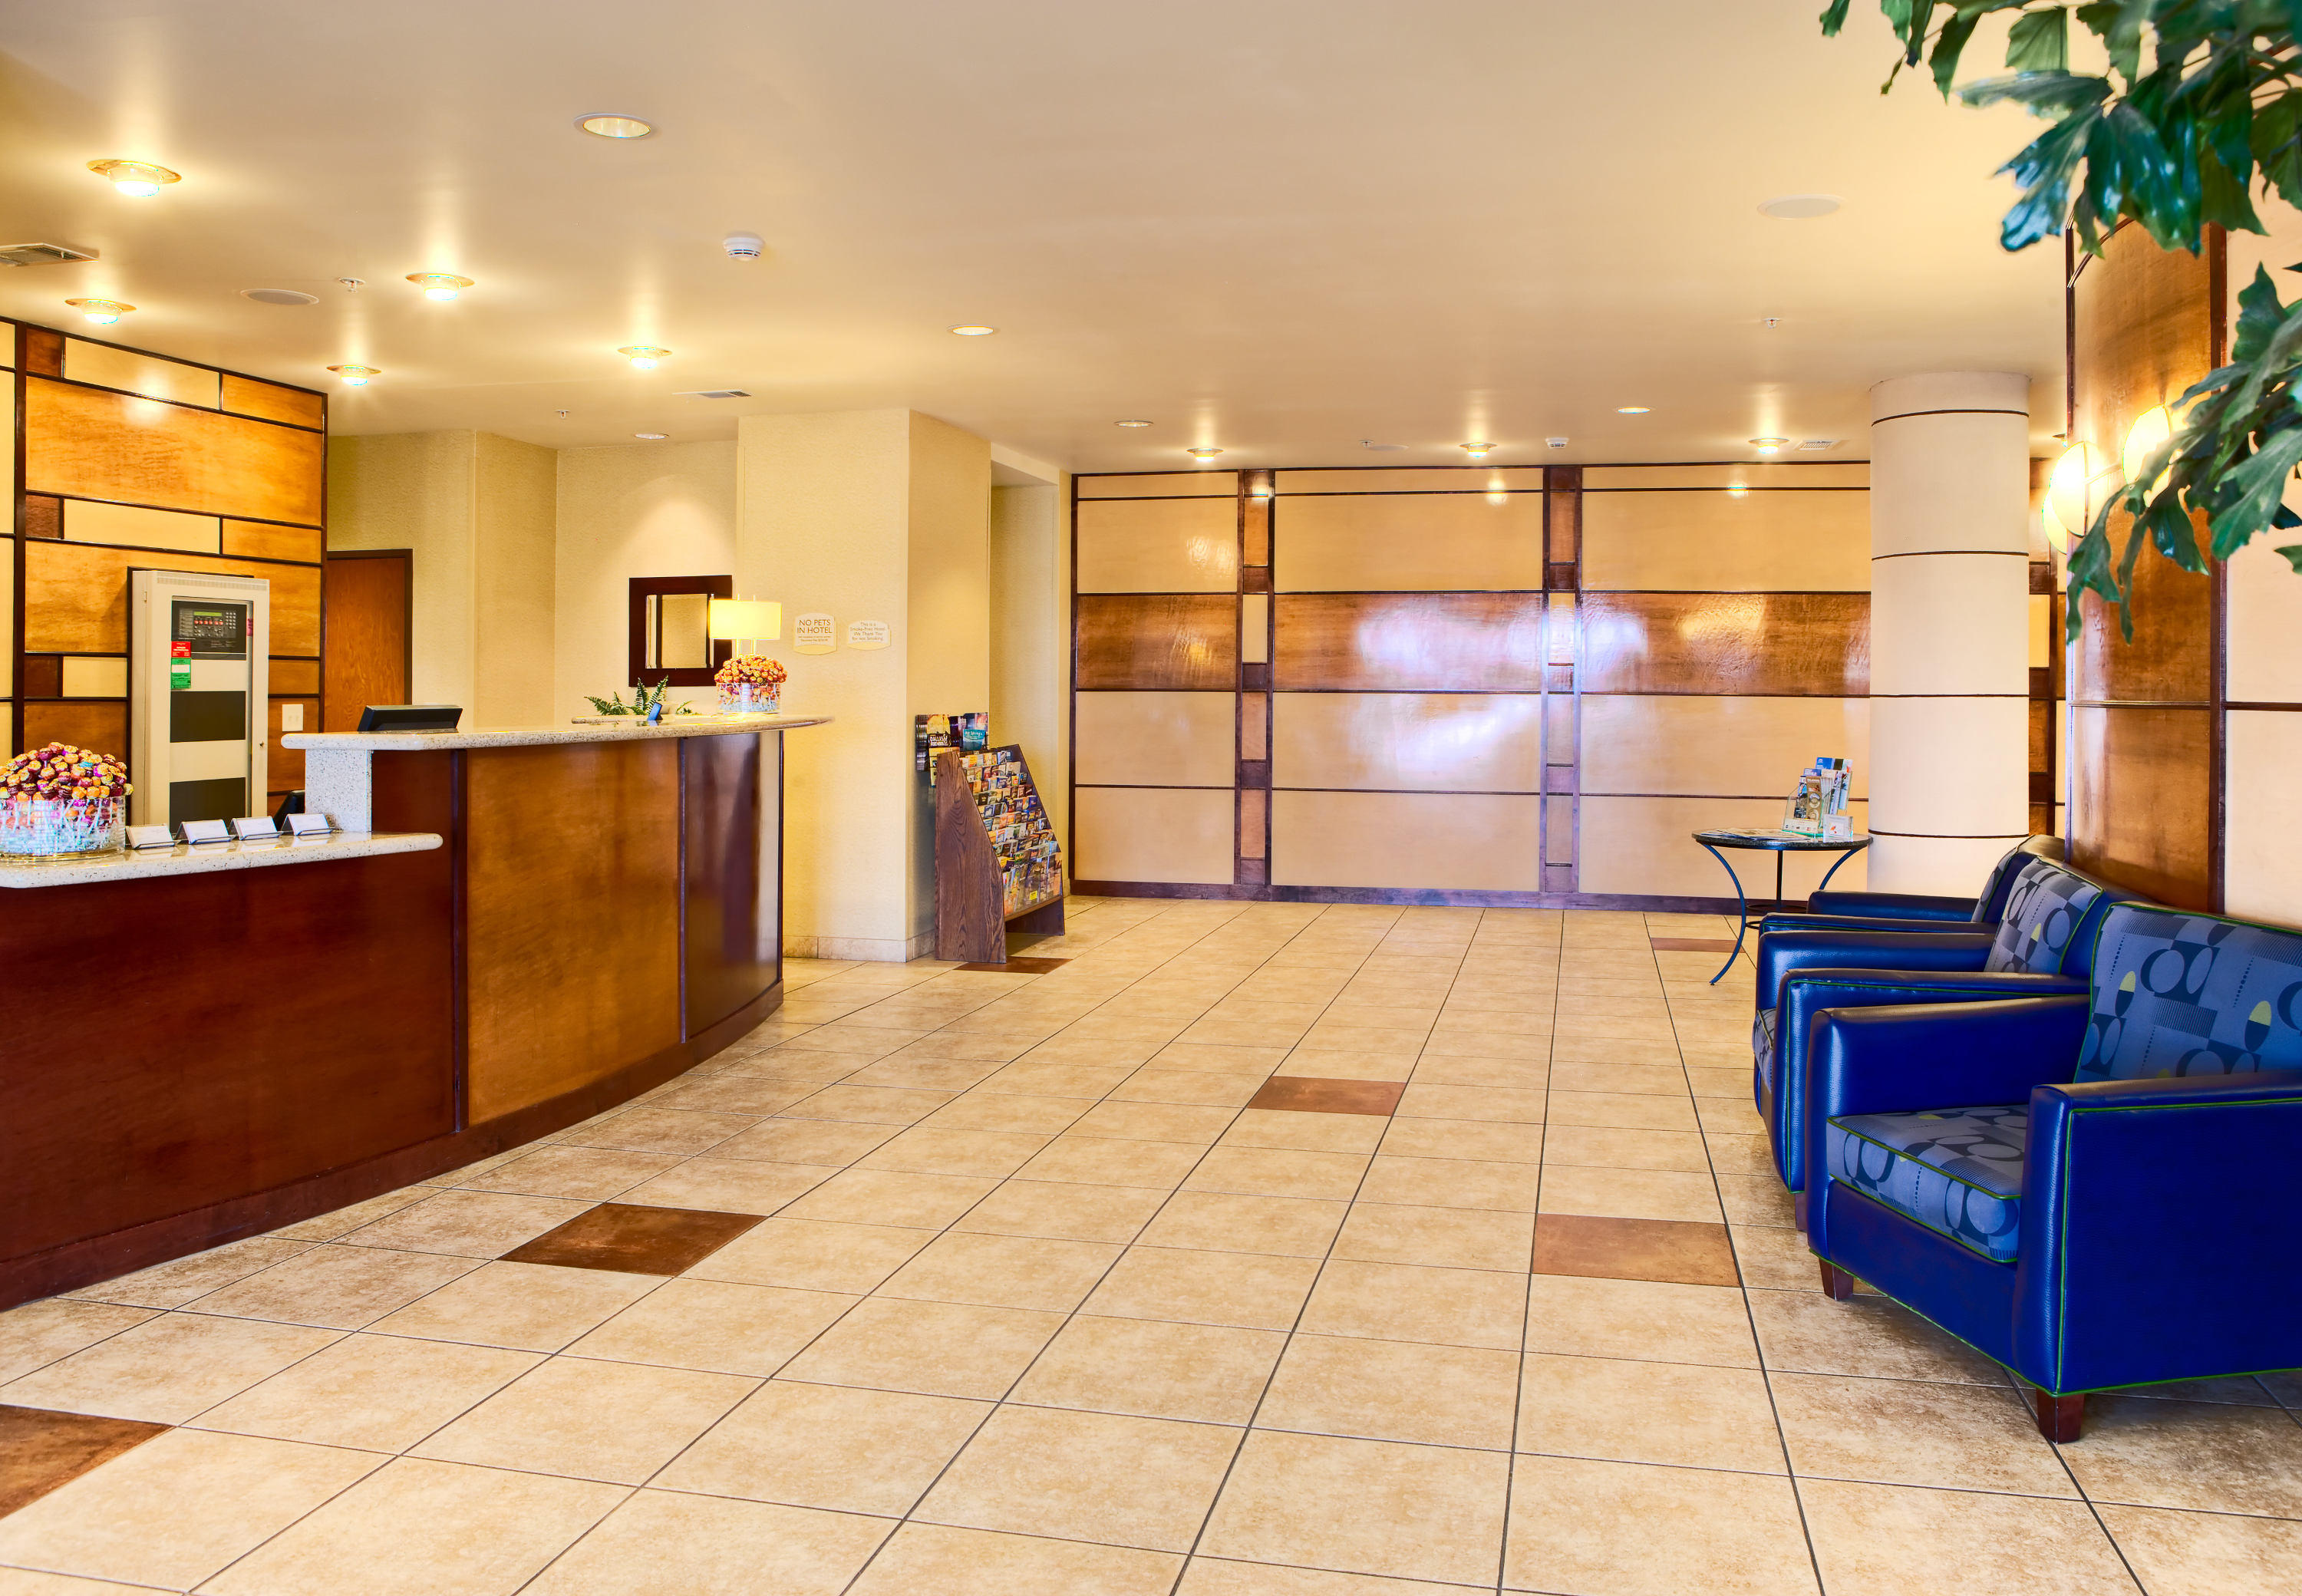 SpringHill Suites by Marriott Ardmore image 11